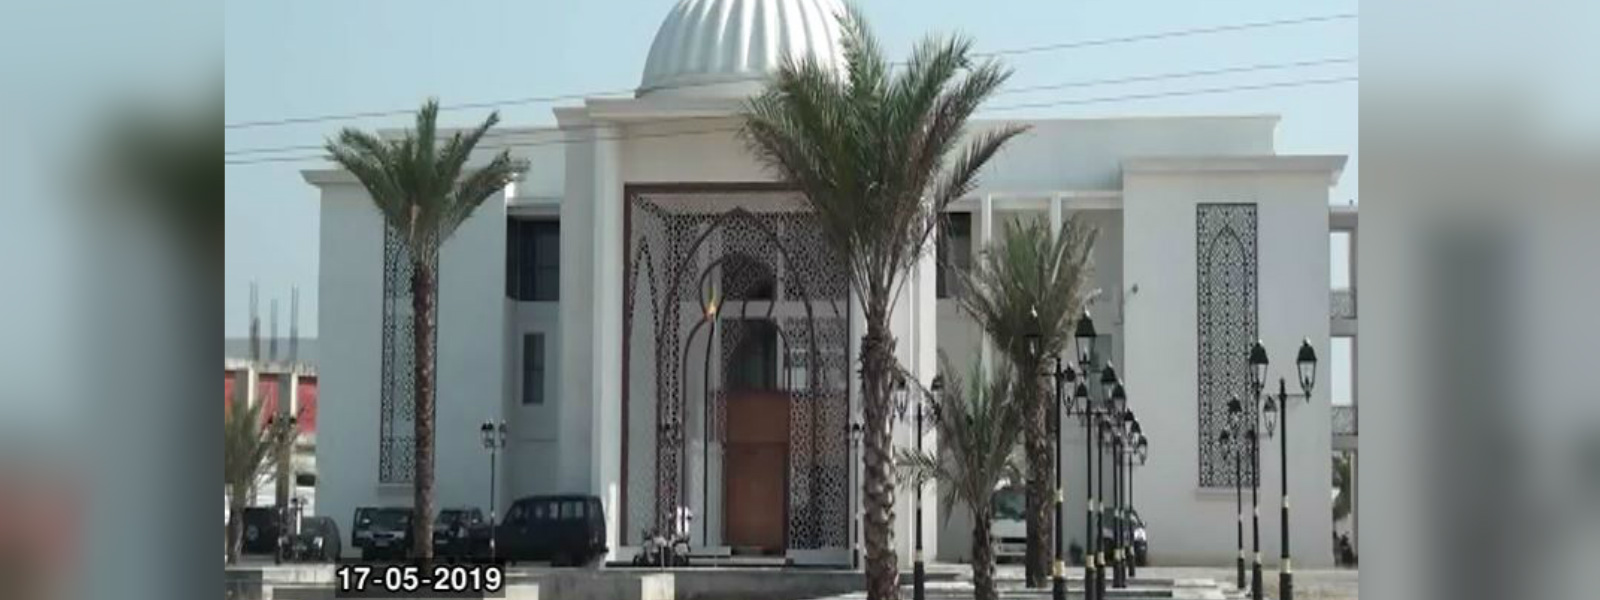 Saudi Arabian company to be investigated on funding Batticaloa Campus